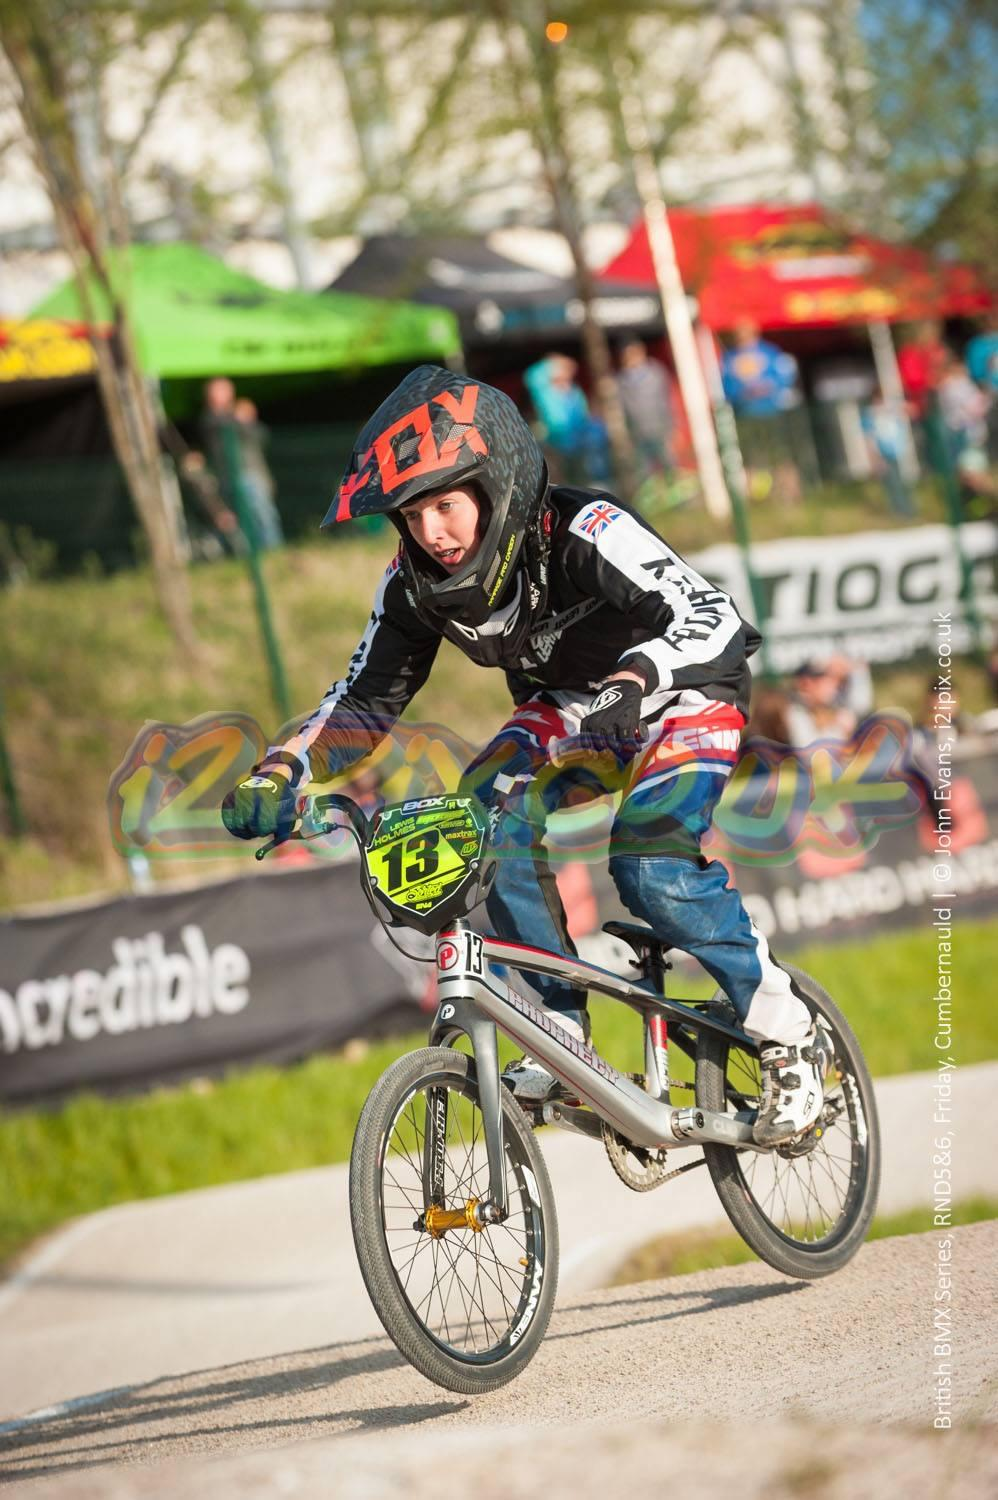 Lewis Racing on BMX